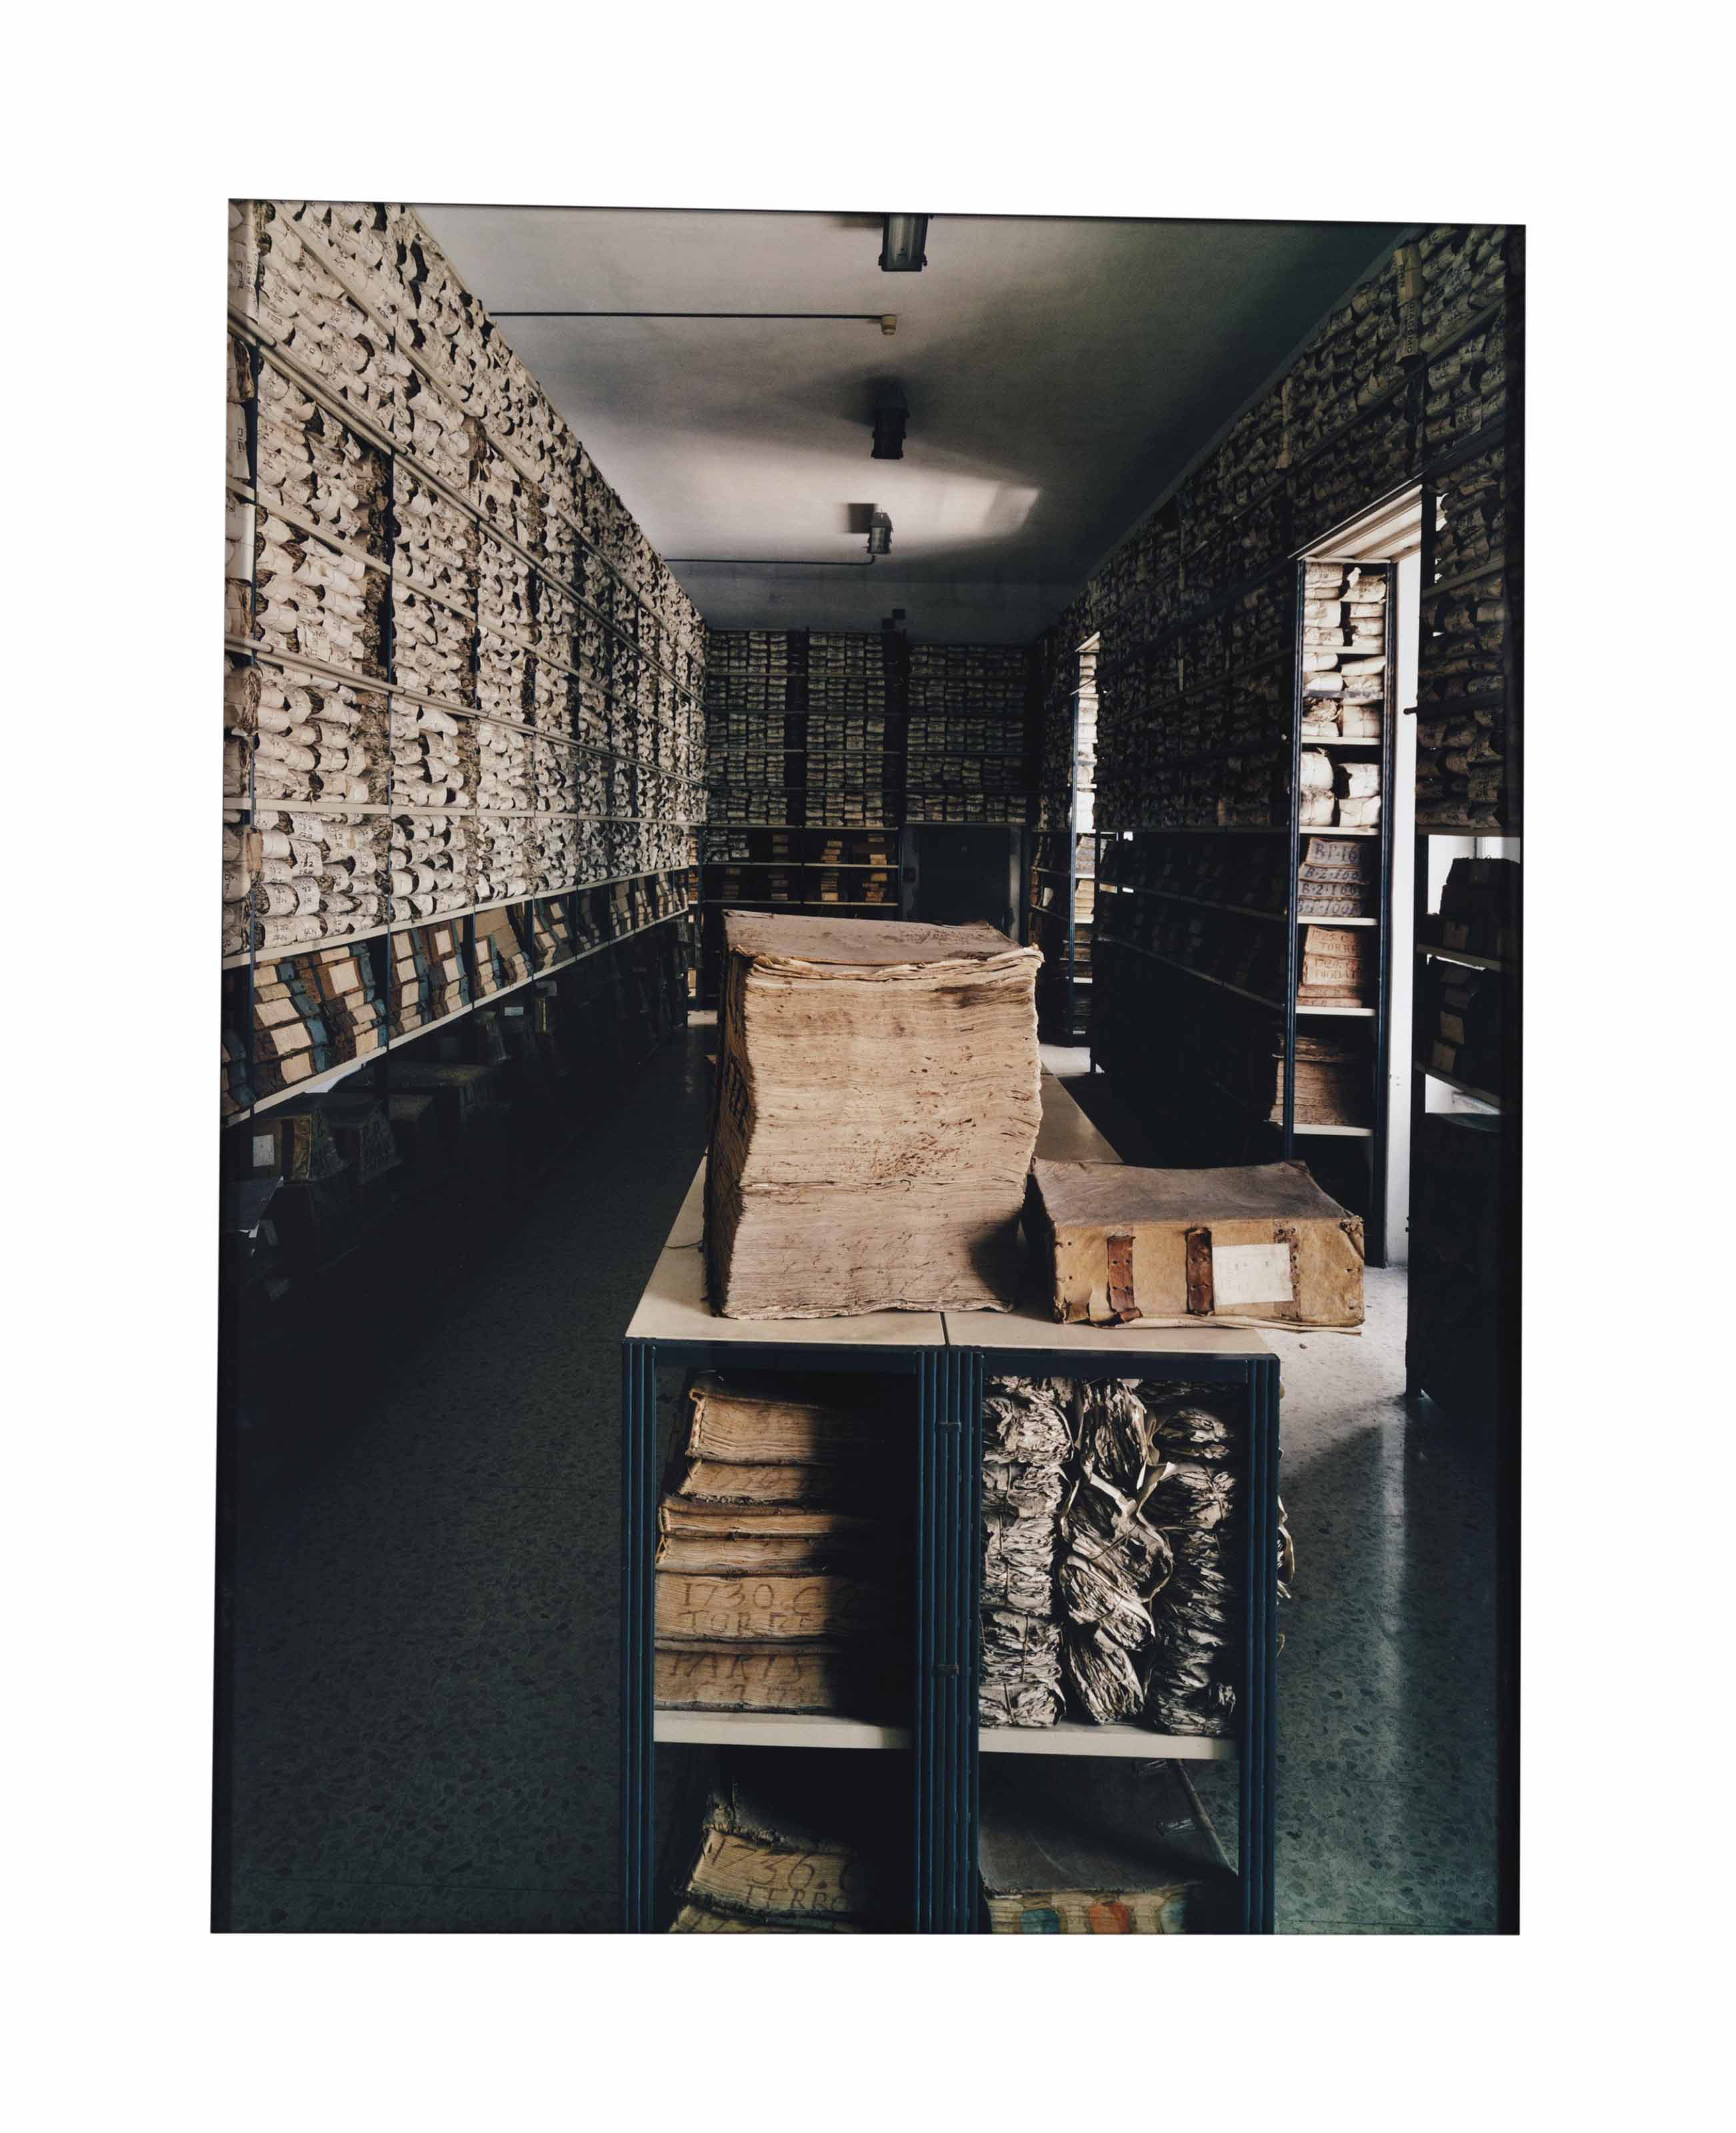 Archive of the Bank of Venice, 17th and 18th Century Room, 1997